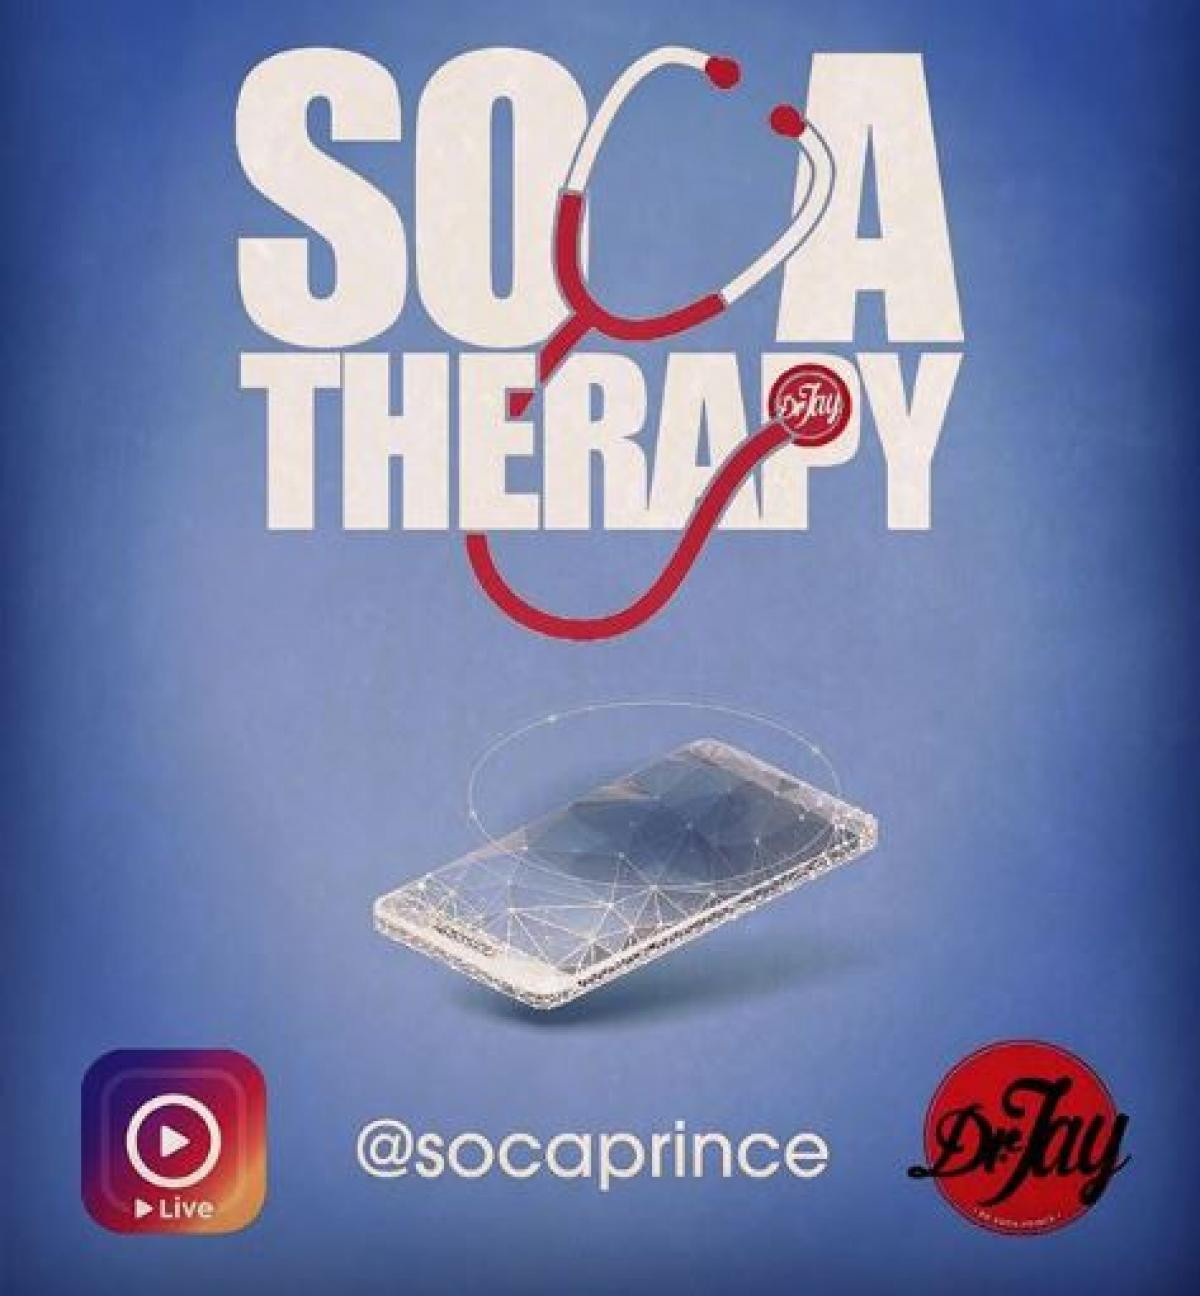 Soca Therapy flyer or graphic.